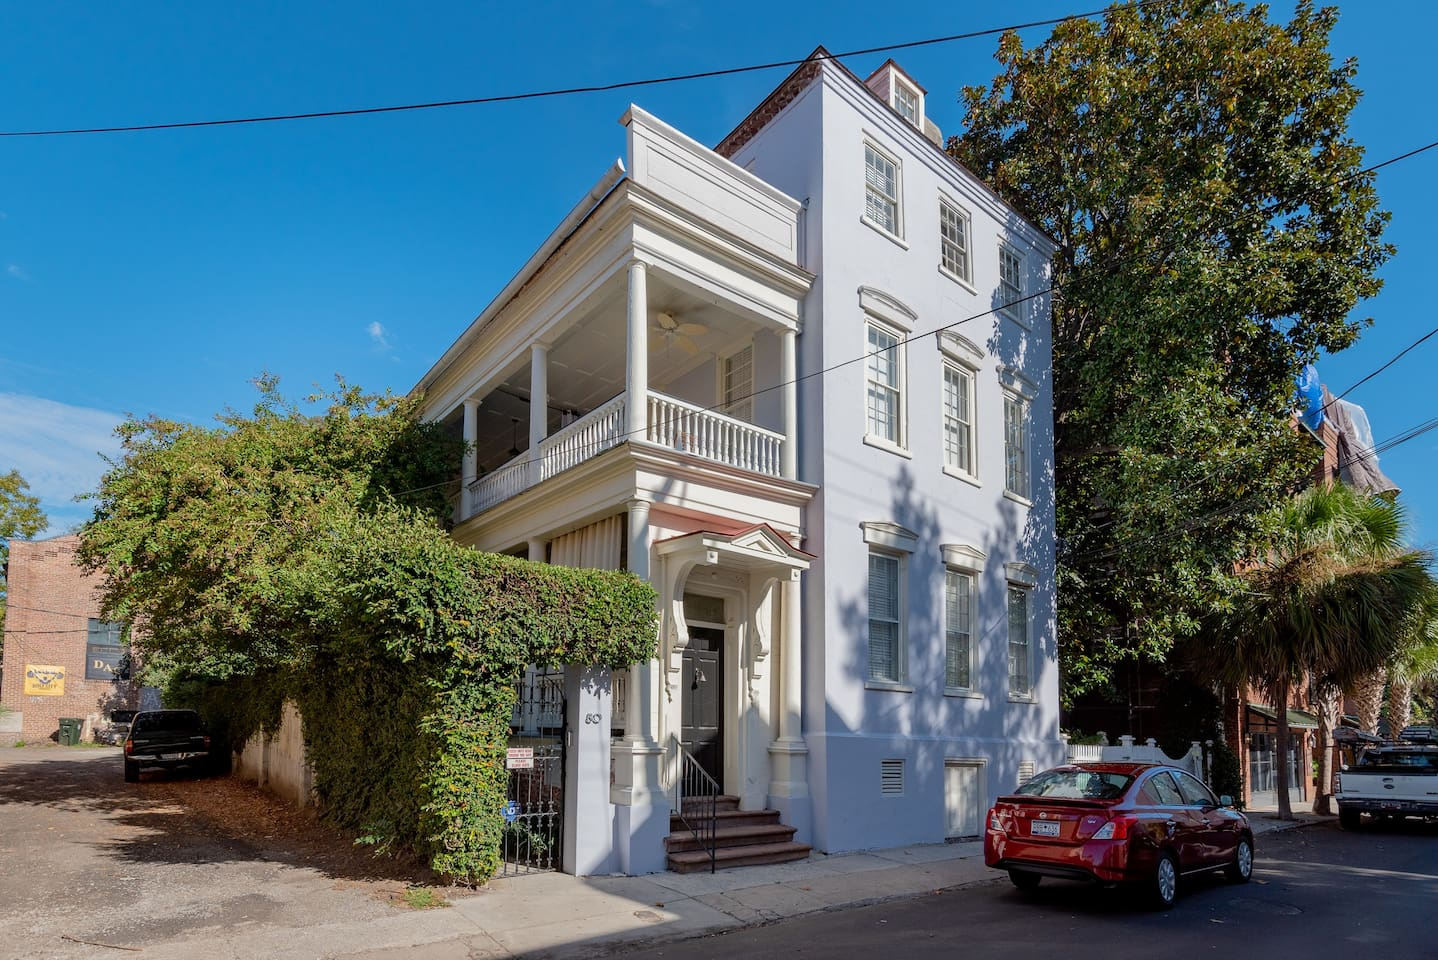 The condo is located on the second floor of this historic building in the heart of downtown Charleston.  Conveniently located steps from restaurants and shops.